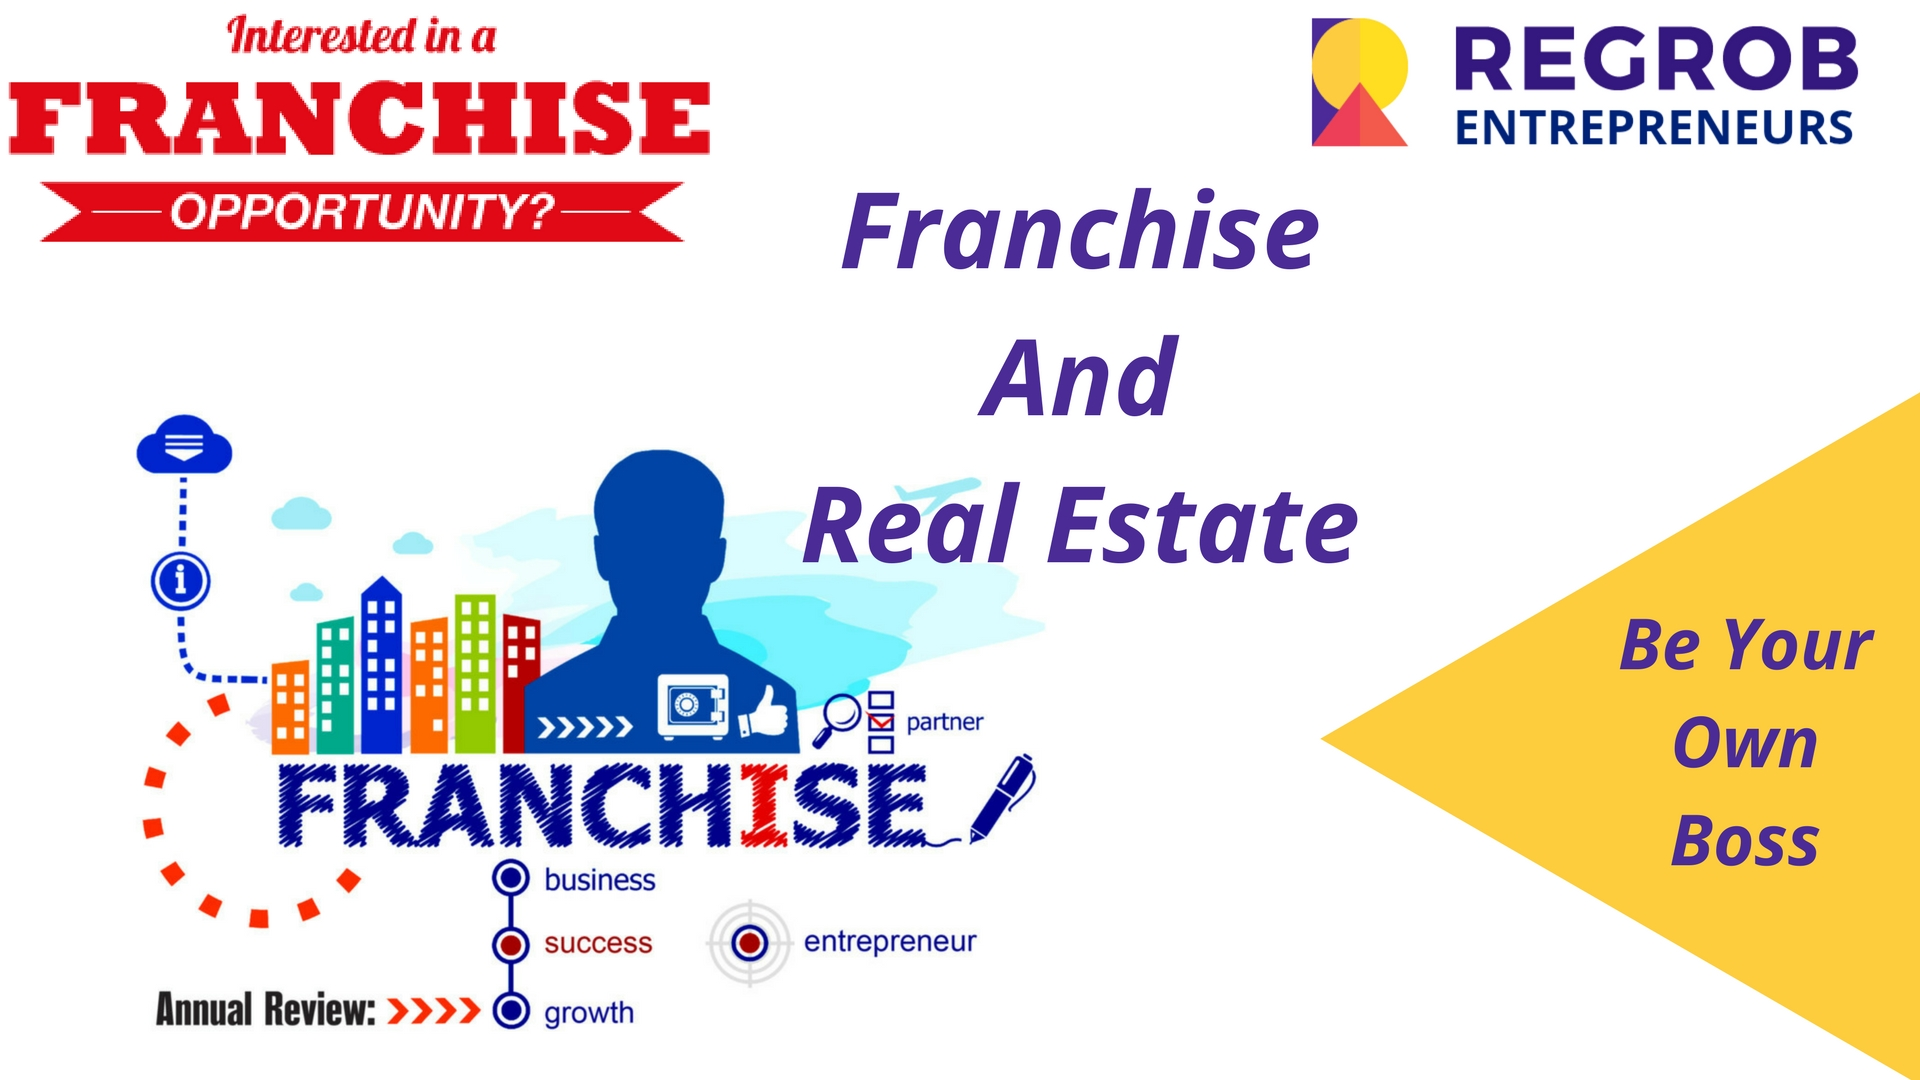 Franchise and Real Estate